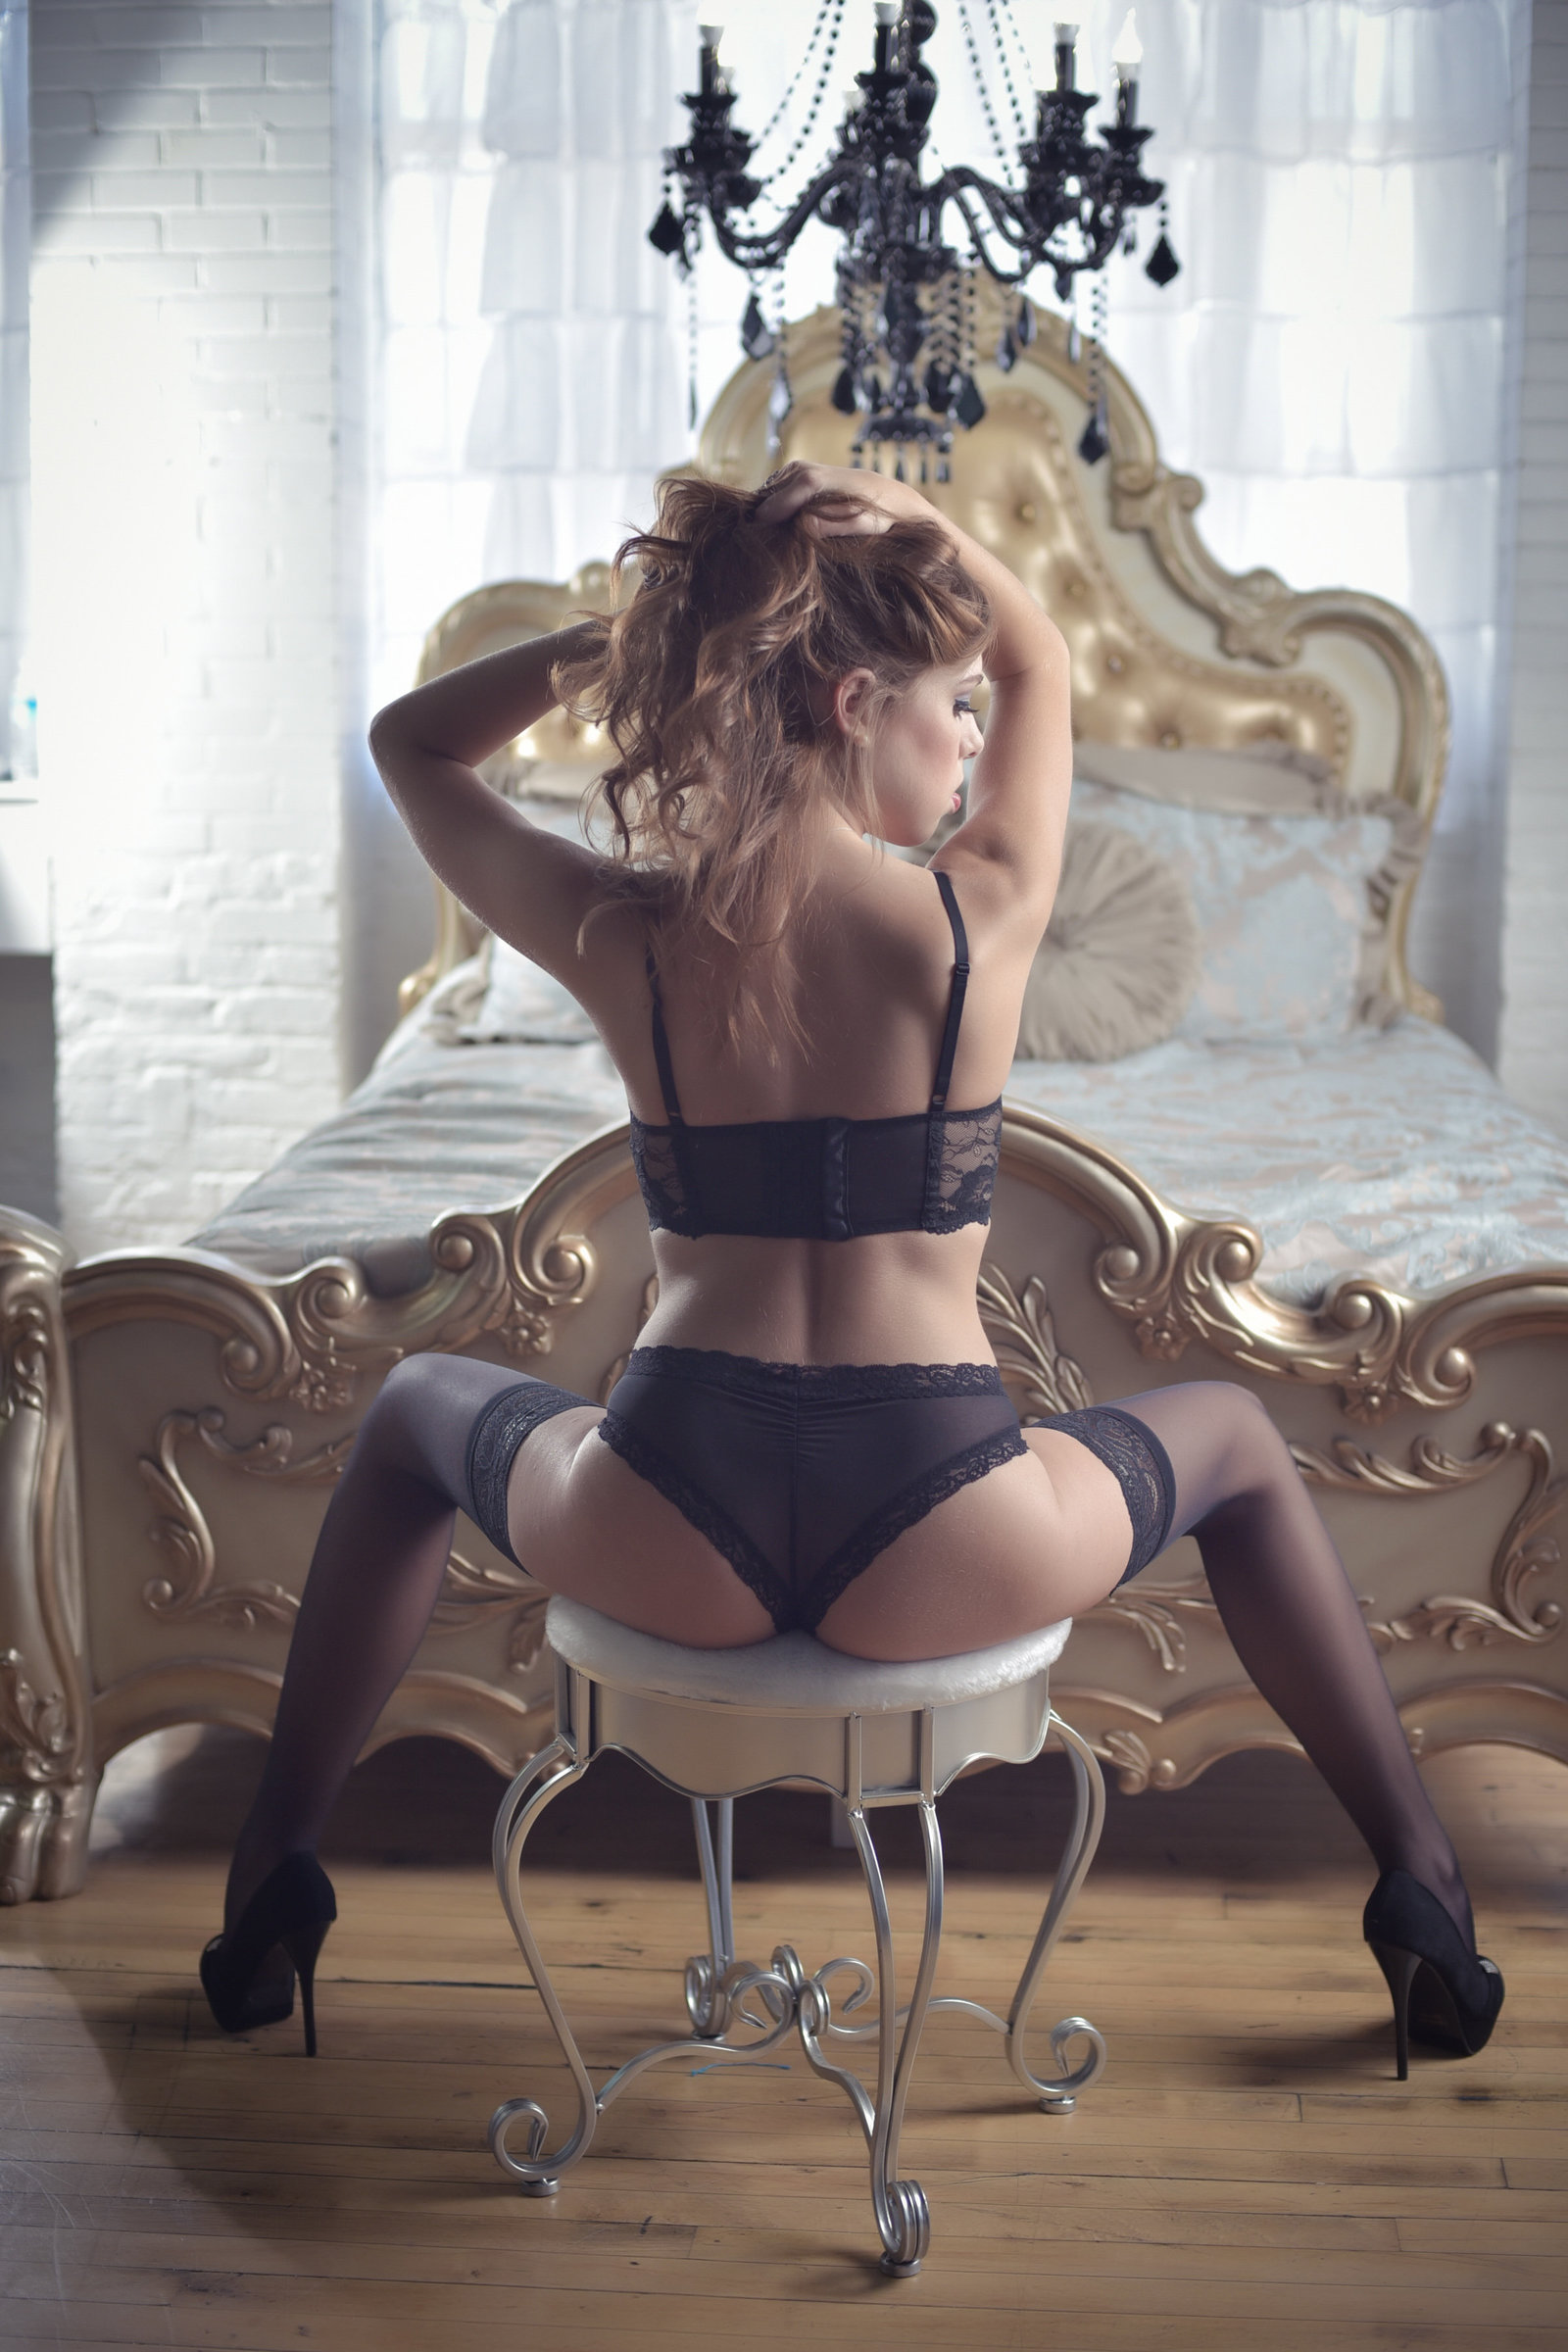 Boudoir Louisville - Boudoir Photography Studio - Lexington, Cincinnati & Indianapolis-681